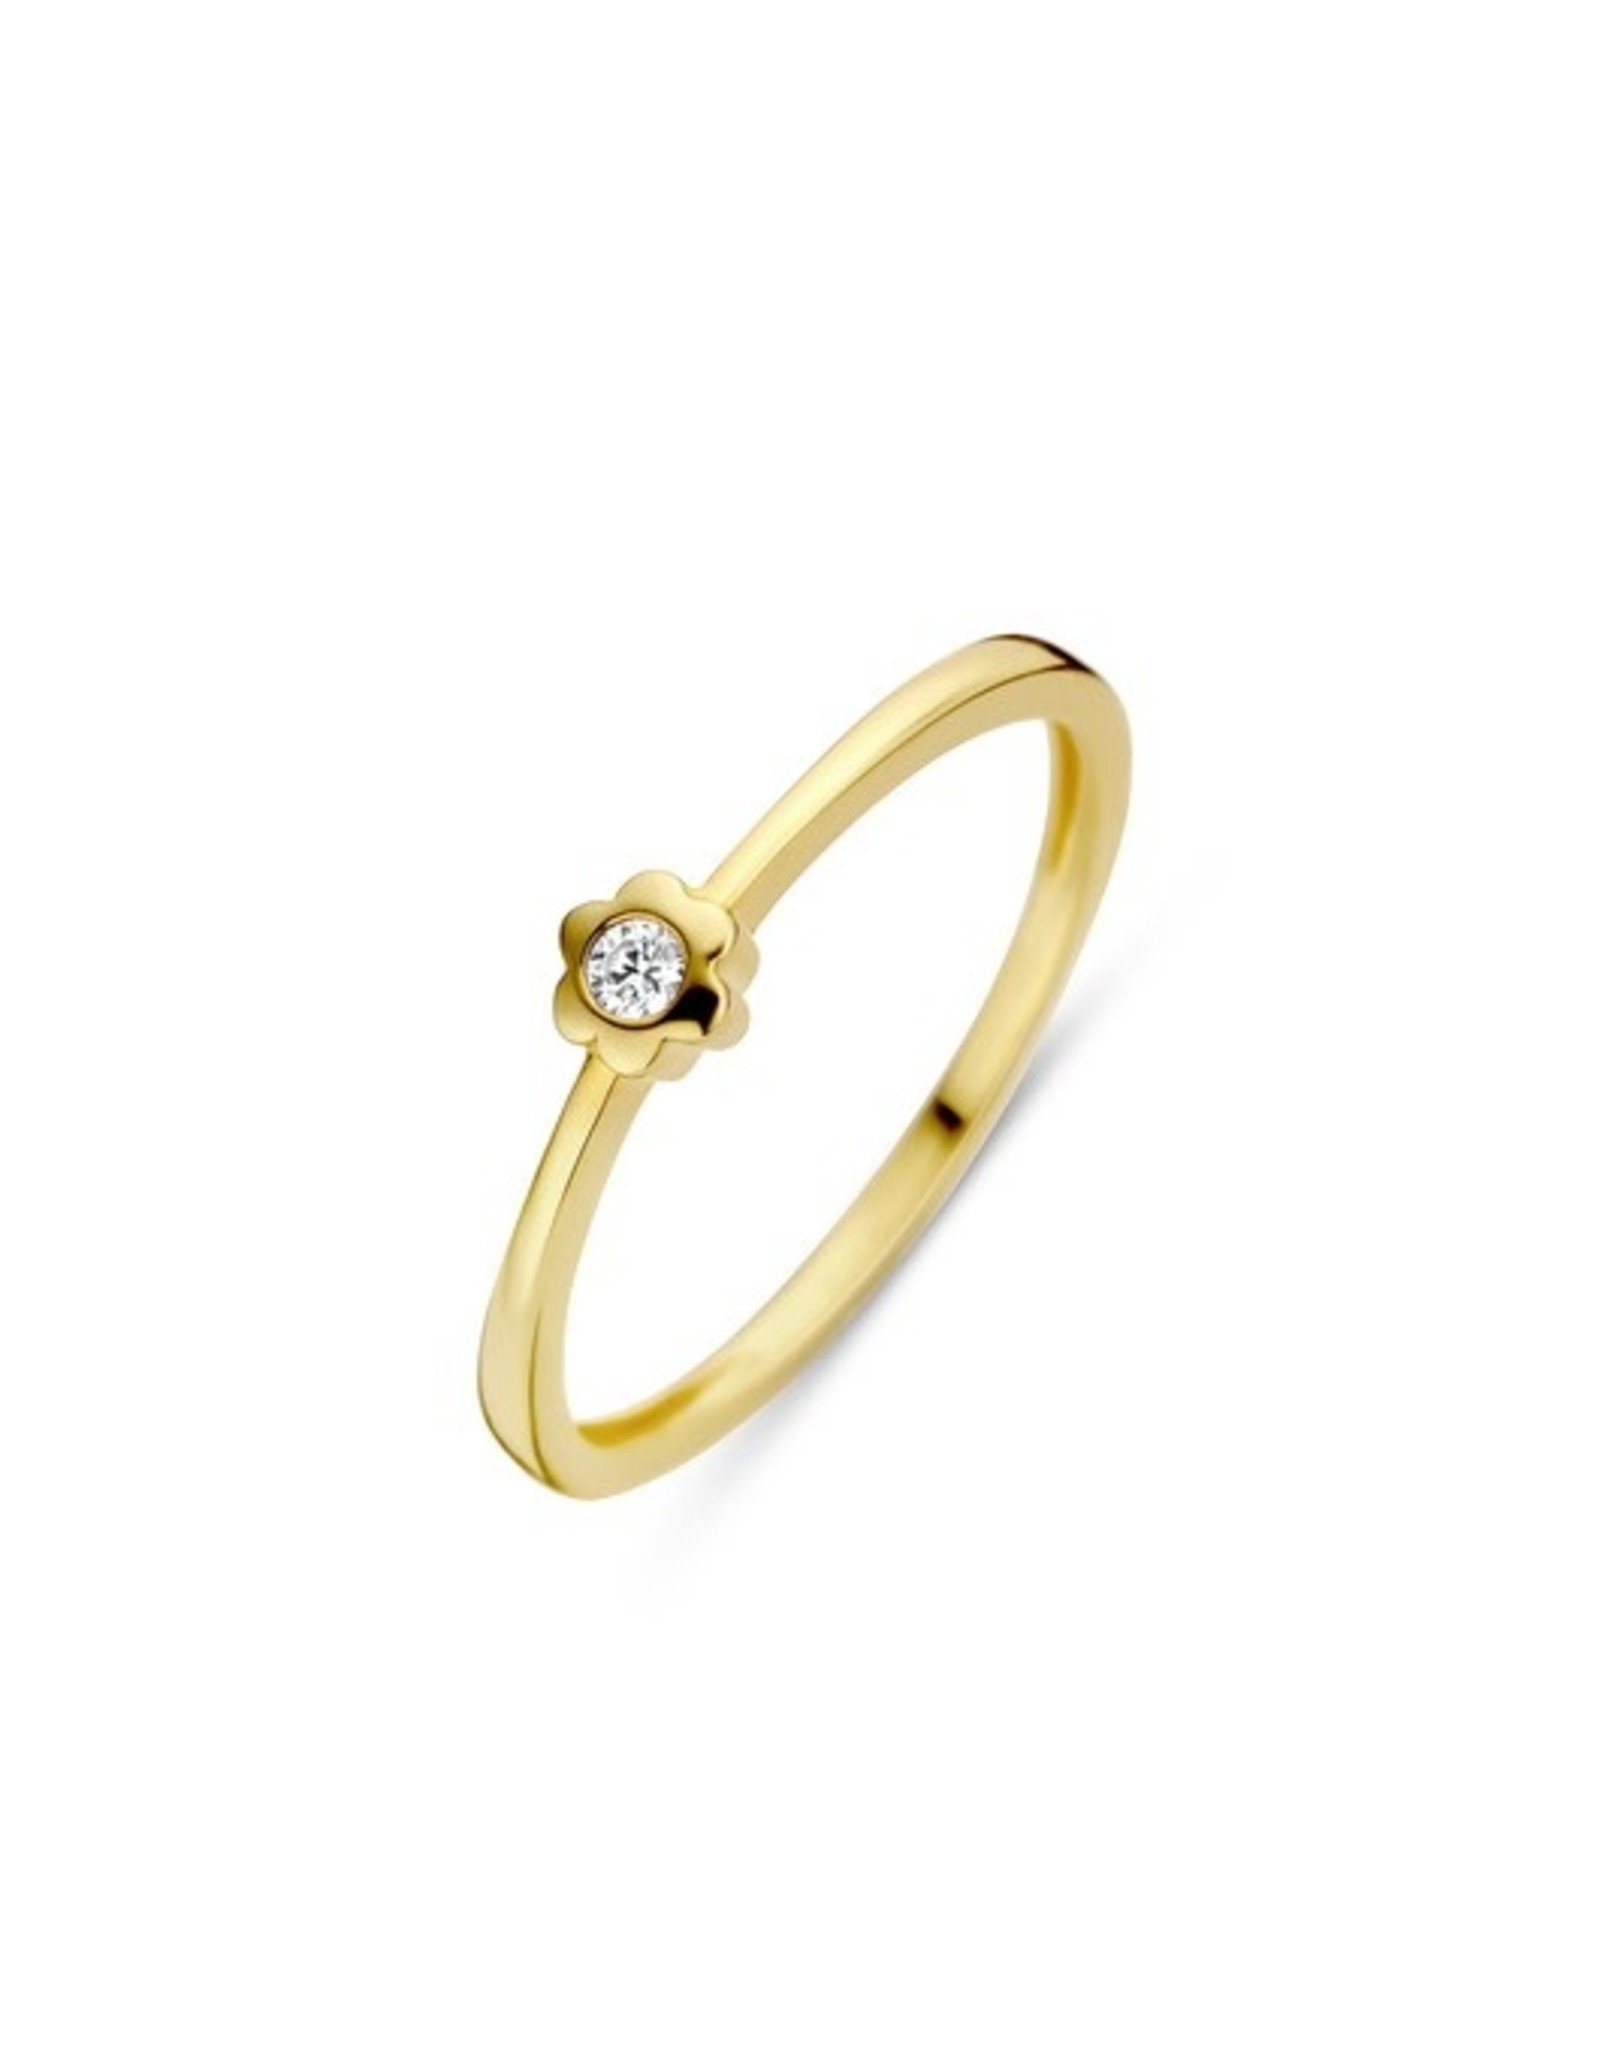 Ring Naiomy Moments B0M04 Zilver Verguld